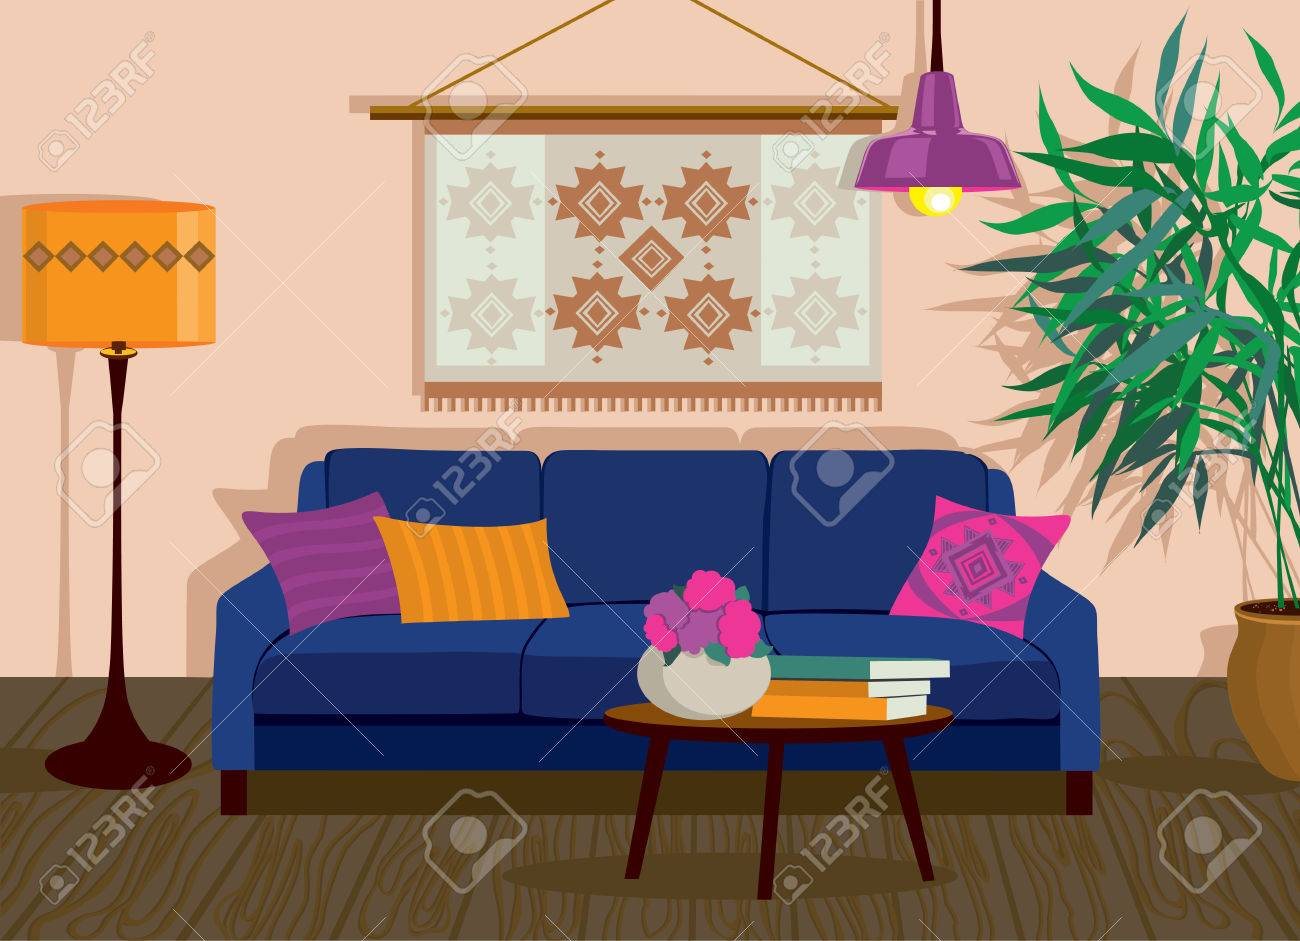 Interior Living Room Vector Illustration In Flat Design With Shadows House Furniture Cartoon